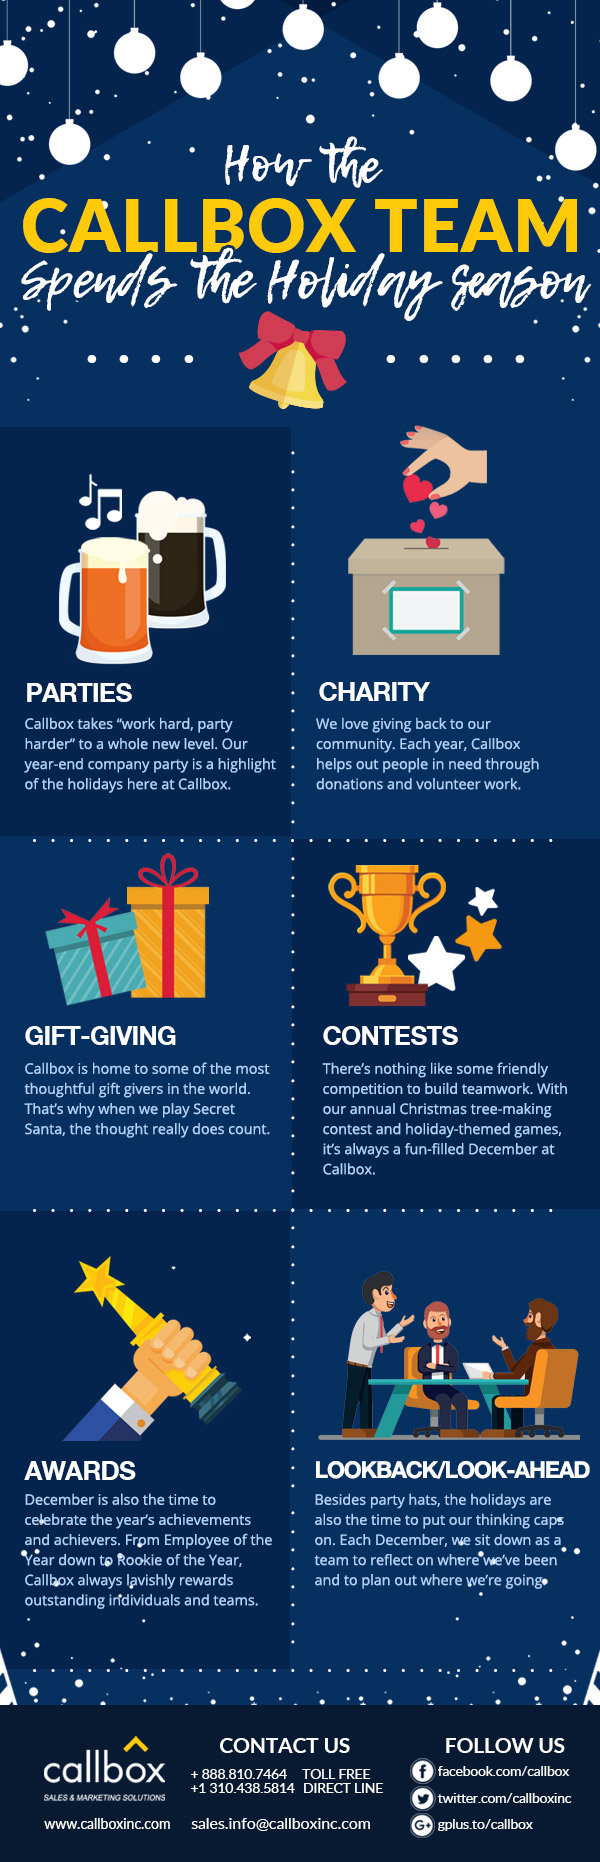 How the Callbox Team Spends the Holiday Season [INFOGRAPHIC]